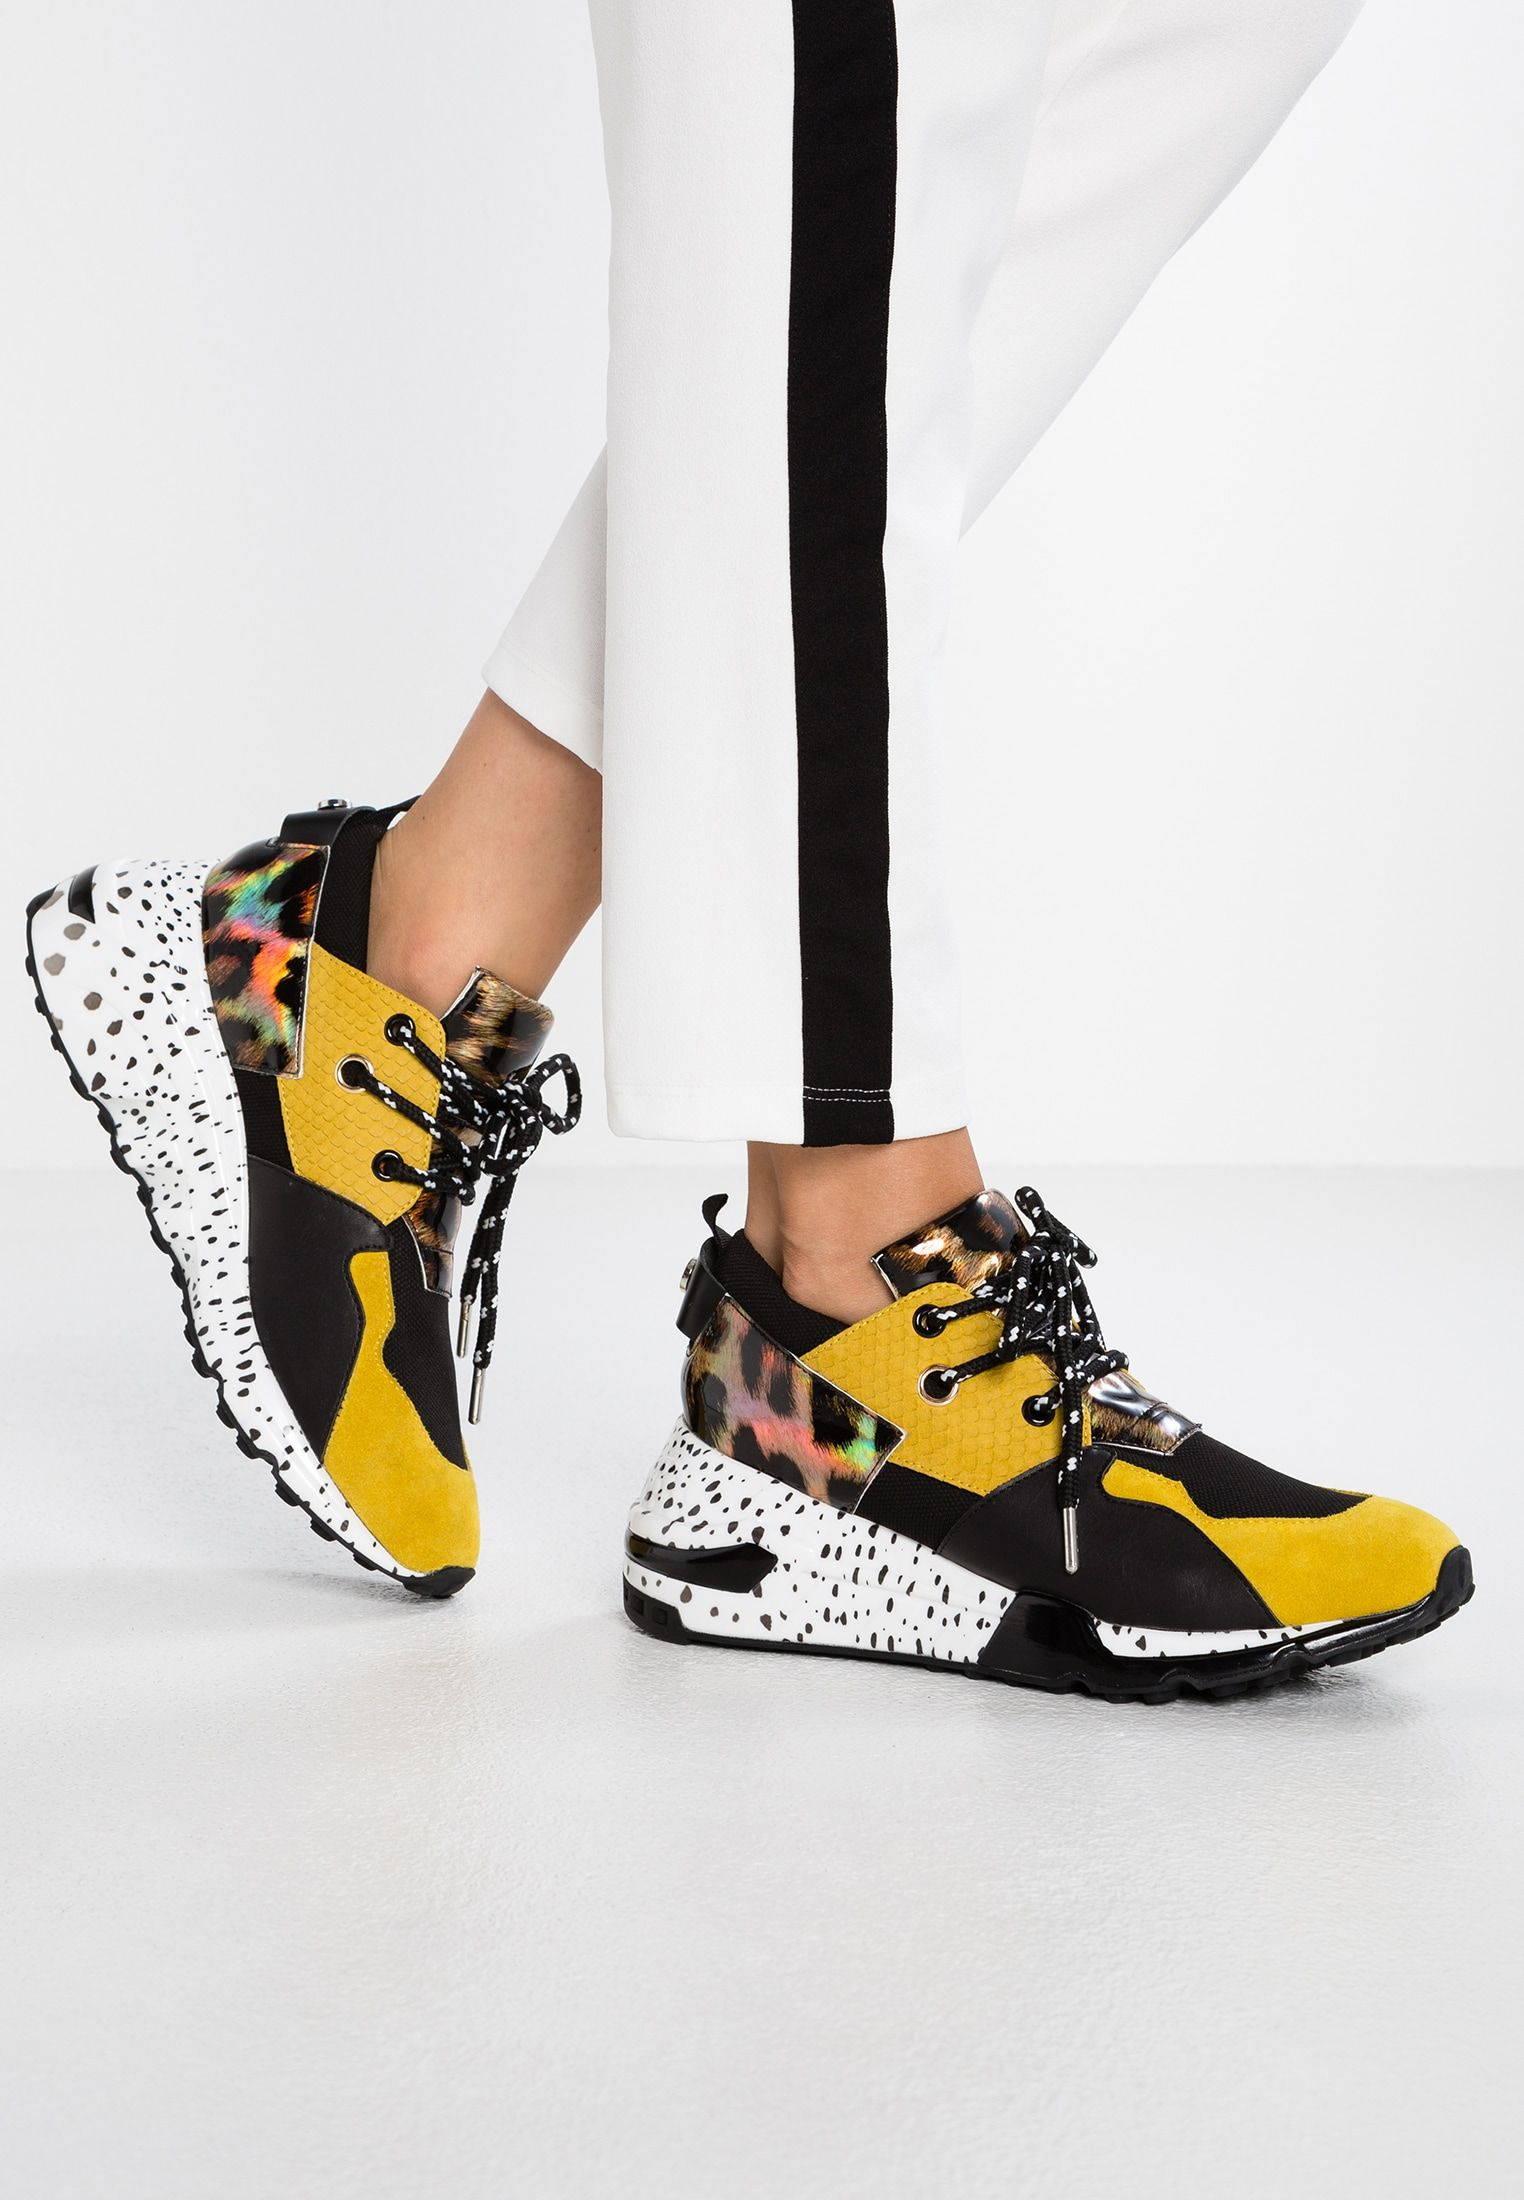 Steve Madden Sneakers Cliff Yellow Multy